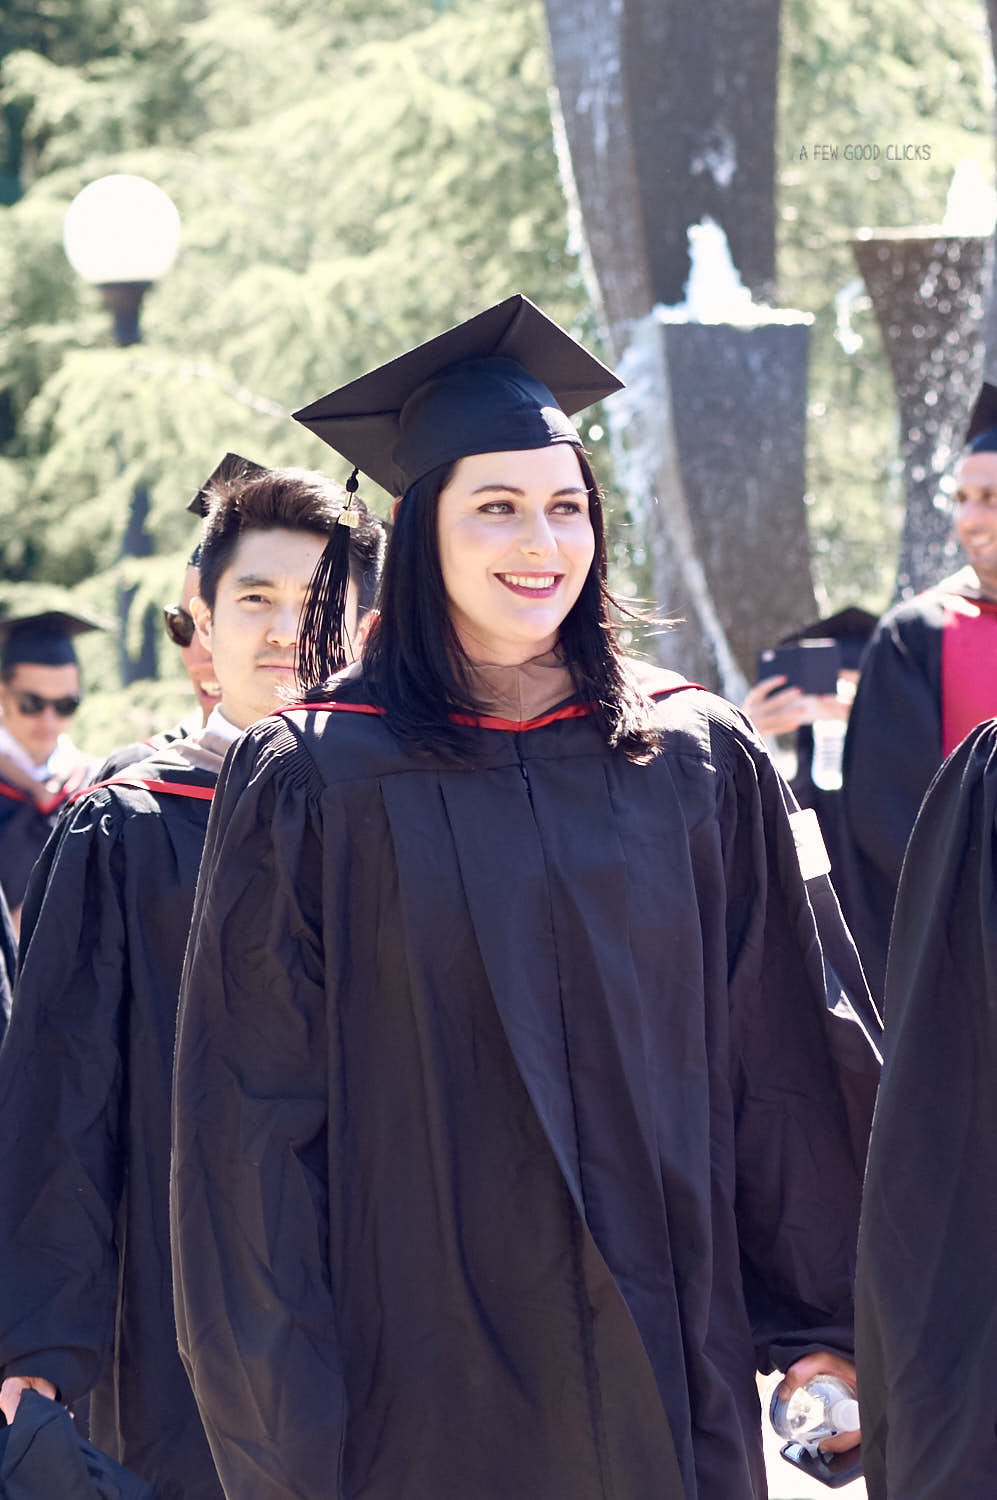 graduates-walking-for-the-completion-ceremony-photography-by-a-few-good-clicks+17.jpg